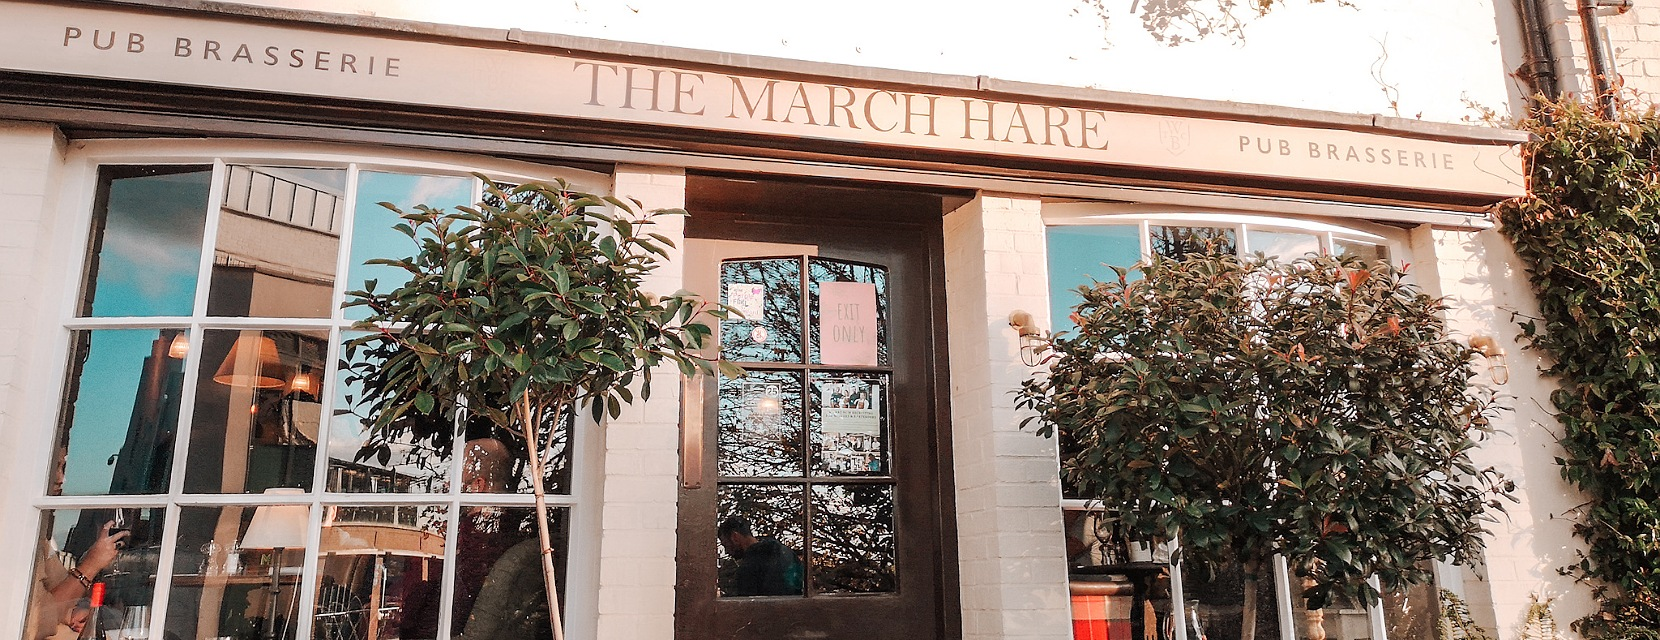 Sunday Lunch at The March Hare, Guildford 41